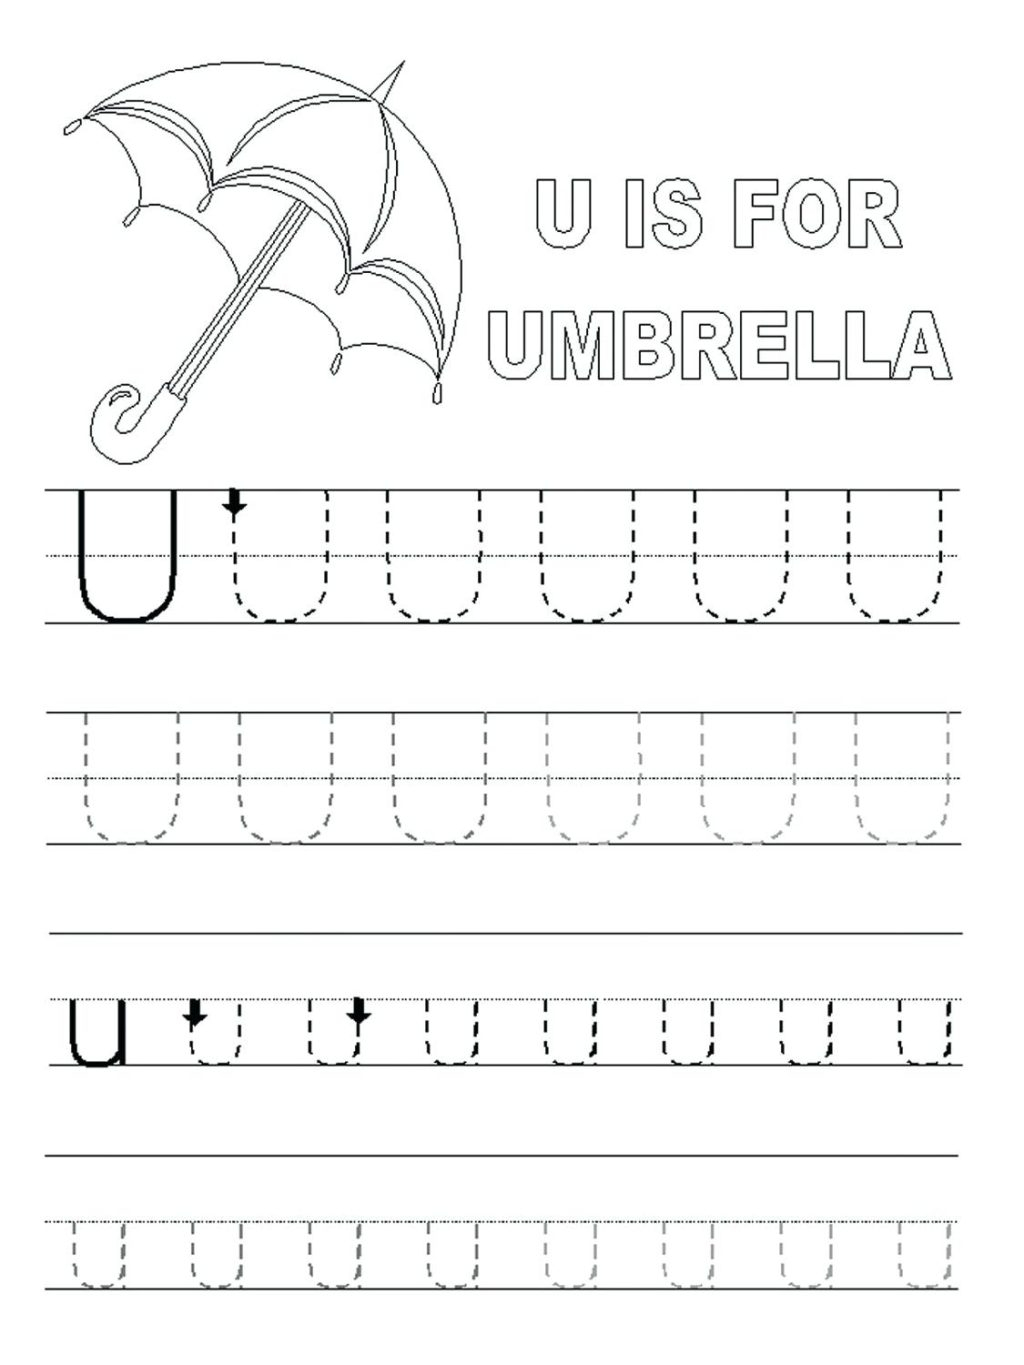 Worksheet ~ Astonishing Printable Tracing Worksheets Letter within Alphabet Worksheets For Kg1